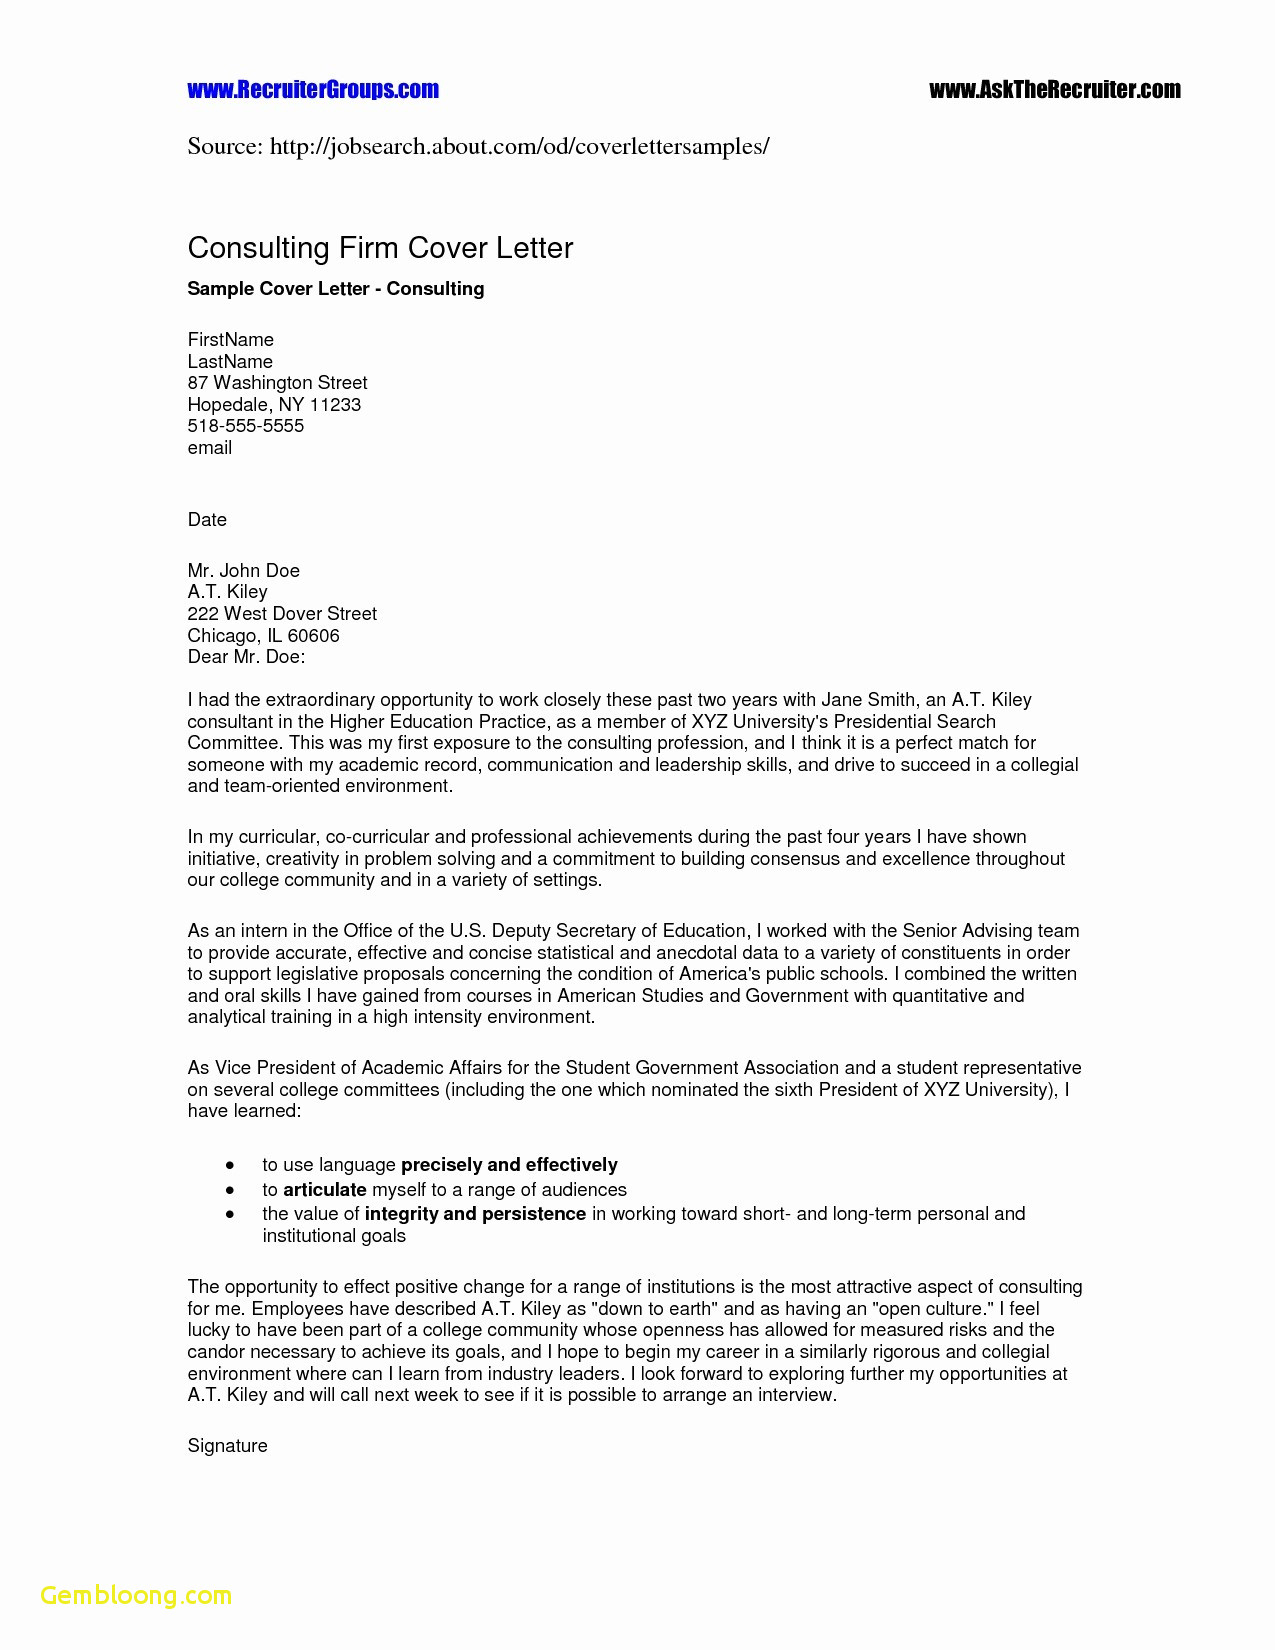 cover letter template doc download collection